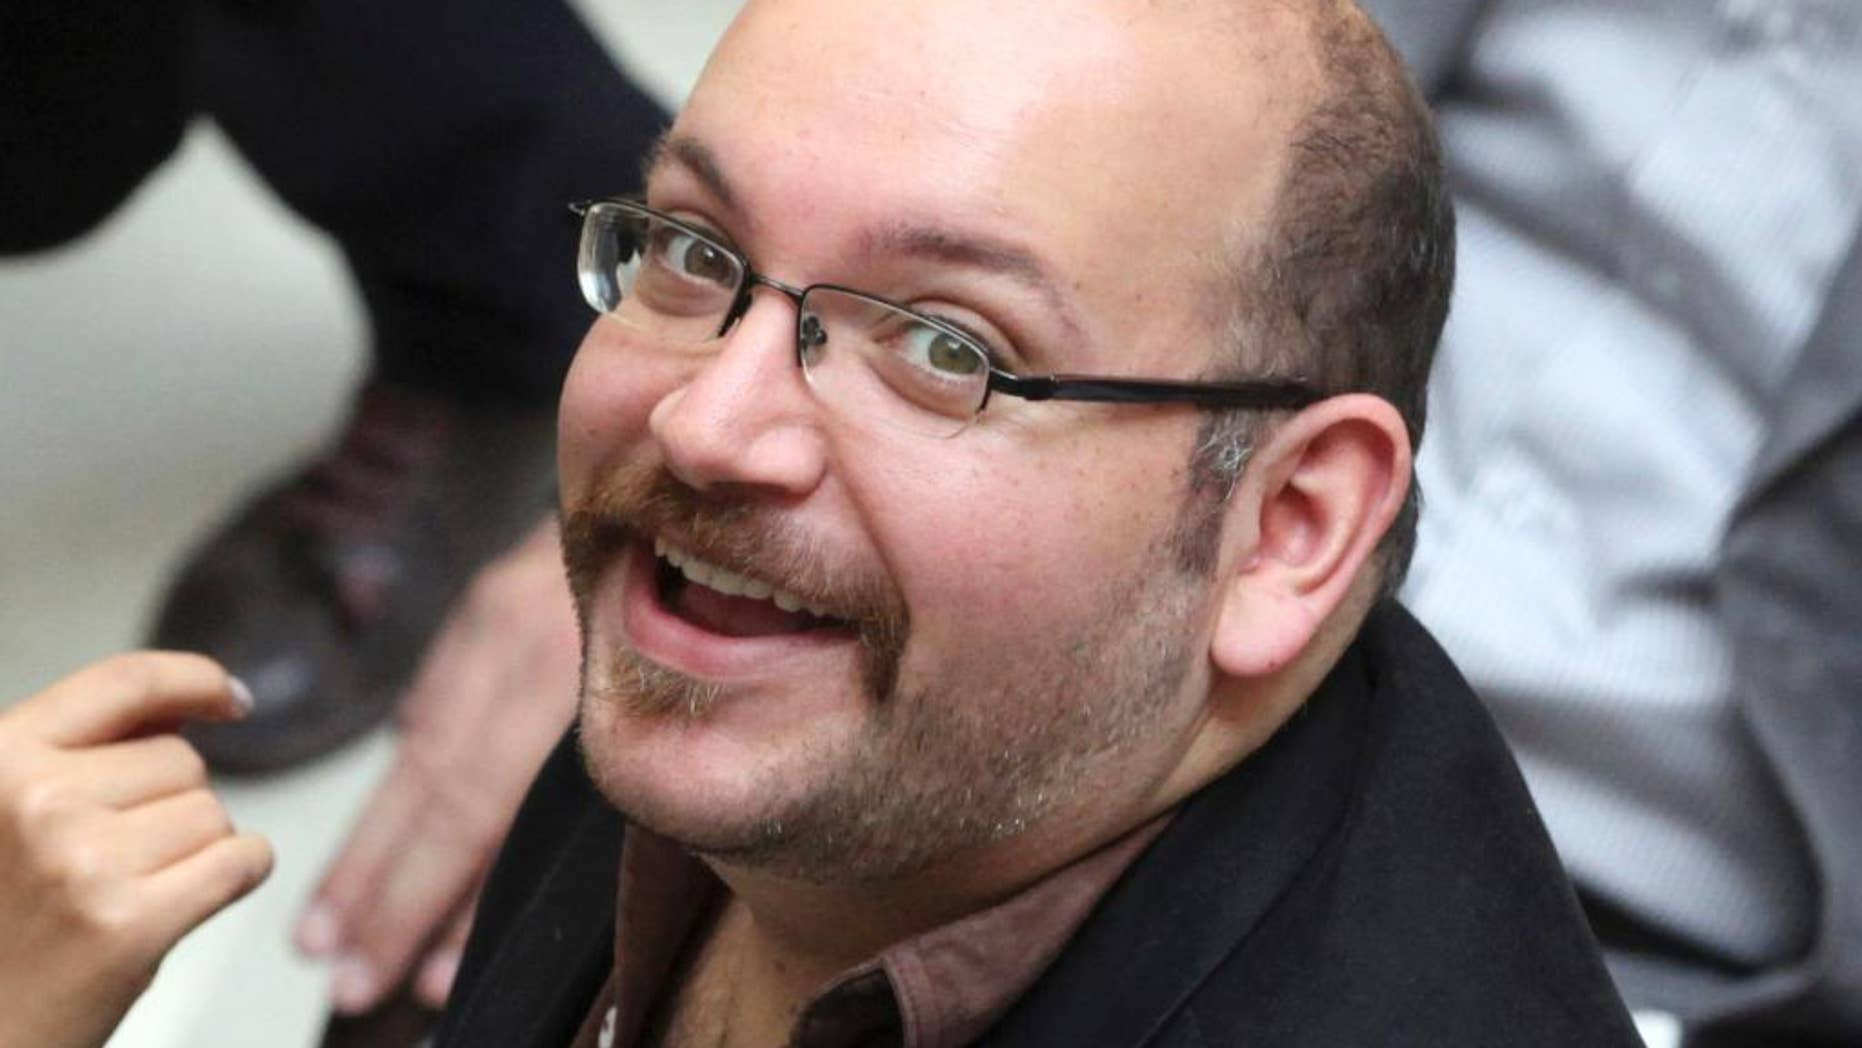 "FILE - In this photo April 11, 2013 file photo, Jason Rezaian, an Iranian-American correspondent for the Washington Post, smiles as he attends a presidential campaign of President Hassan Rouhani in Tehran, Iran. Lawyer Leila Ahsan, who represents Rezaian, told the Post on Monday, April 20, 2015 that the correspondent also faces charges of ""conducting propaganda against the establishment,"" ''collaborating with hostile governments"" and ""collecting information about internal and foreign policy and providing them to individuals with malicious intent.""(AP Photo/Vahid Salemi, File)"